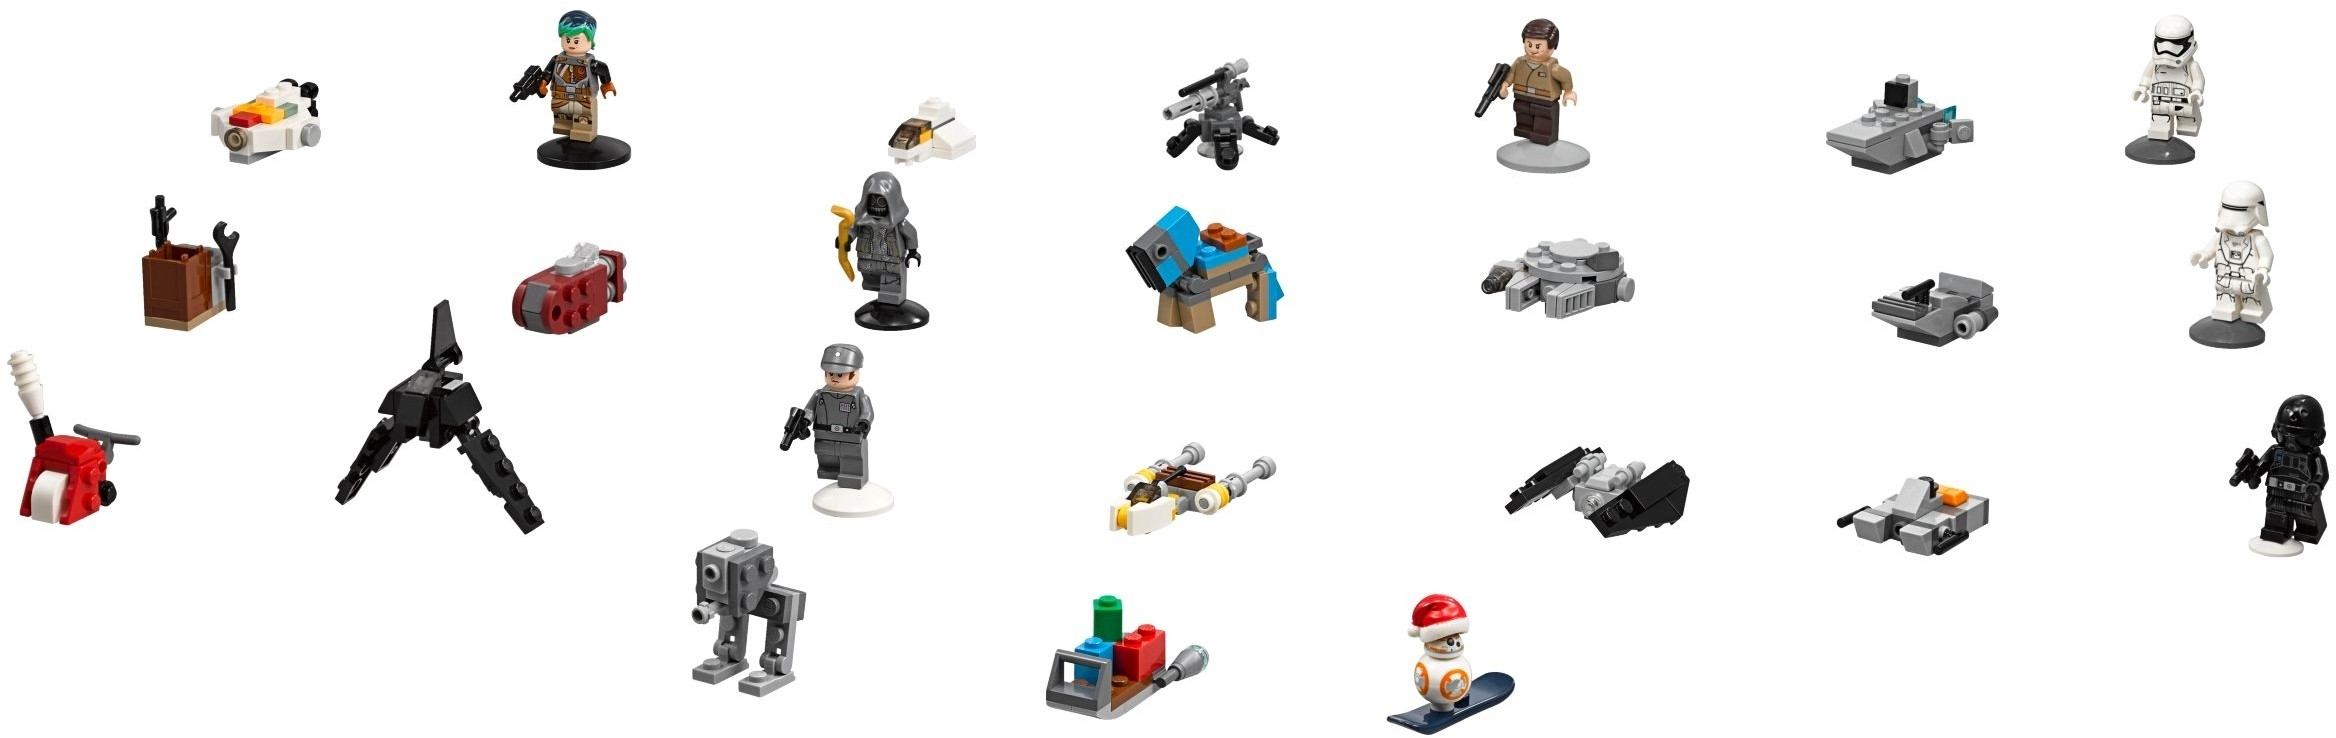 Lego 75184 Star Wars Advent Calendar Instructions, Star Wars within Lego Star Wars 2018 Advent Calendar Instructions